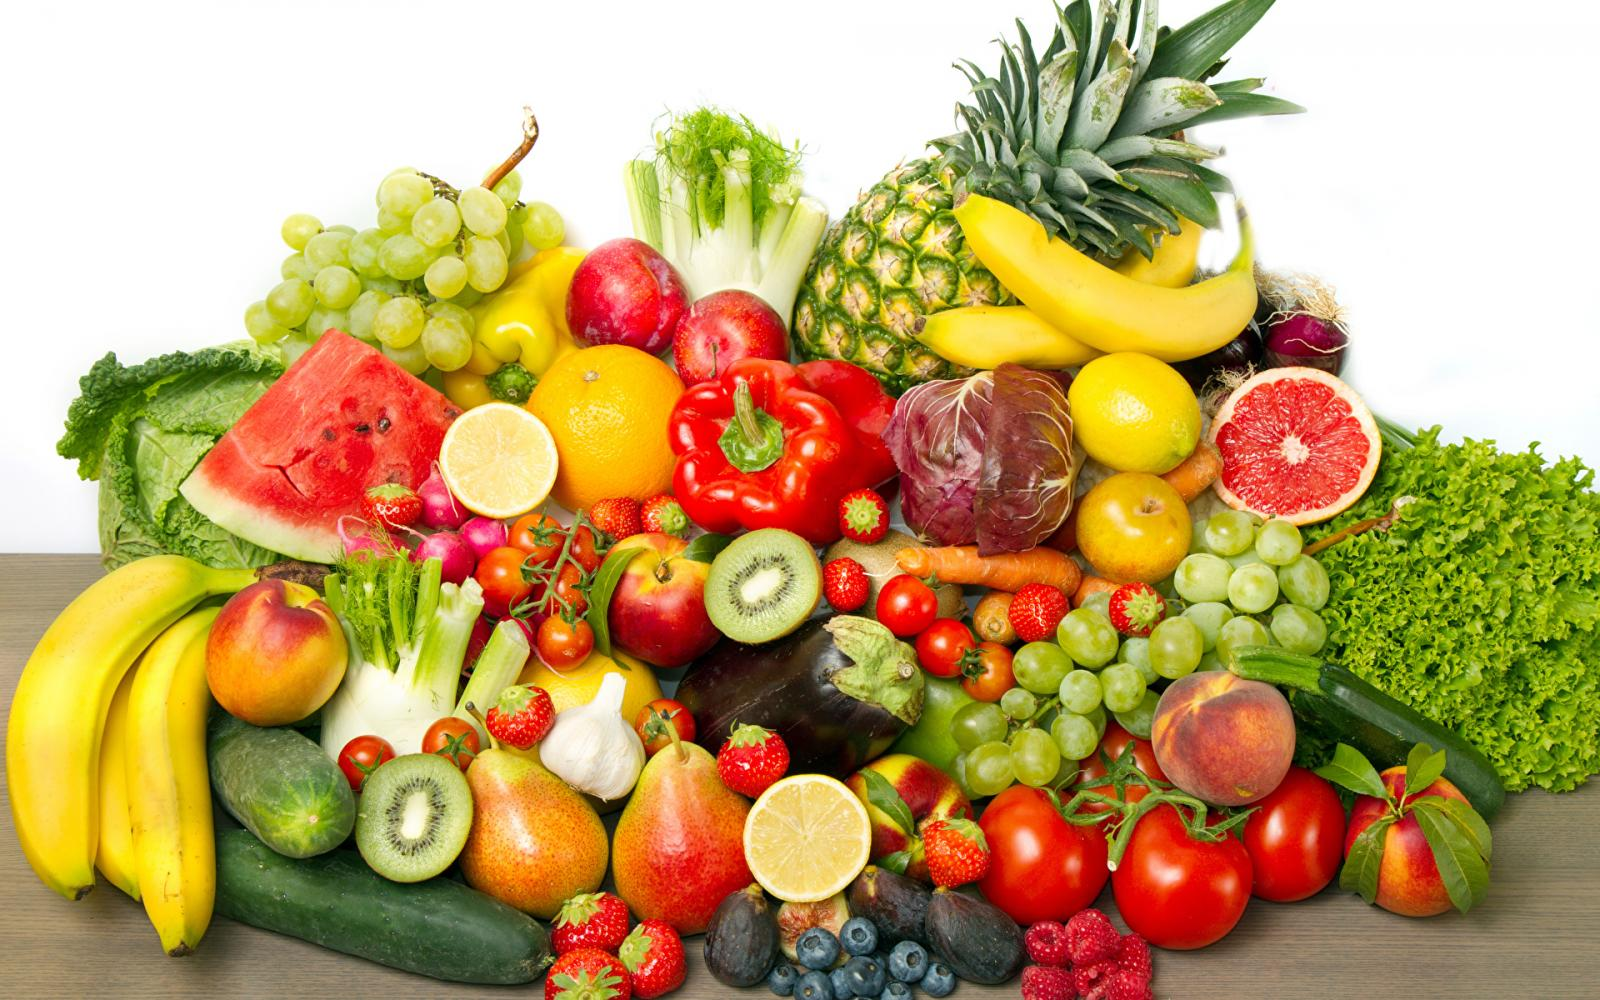 Vegetables_Fruit_Tomatoes_Bananas_Berry_Grapes_538846_1920x1200.jpg